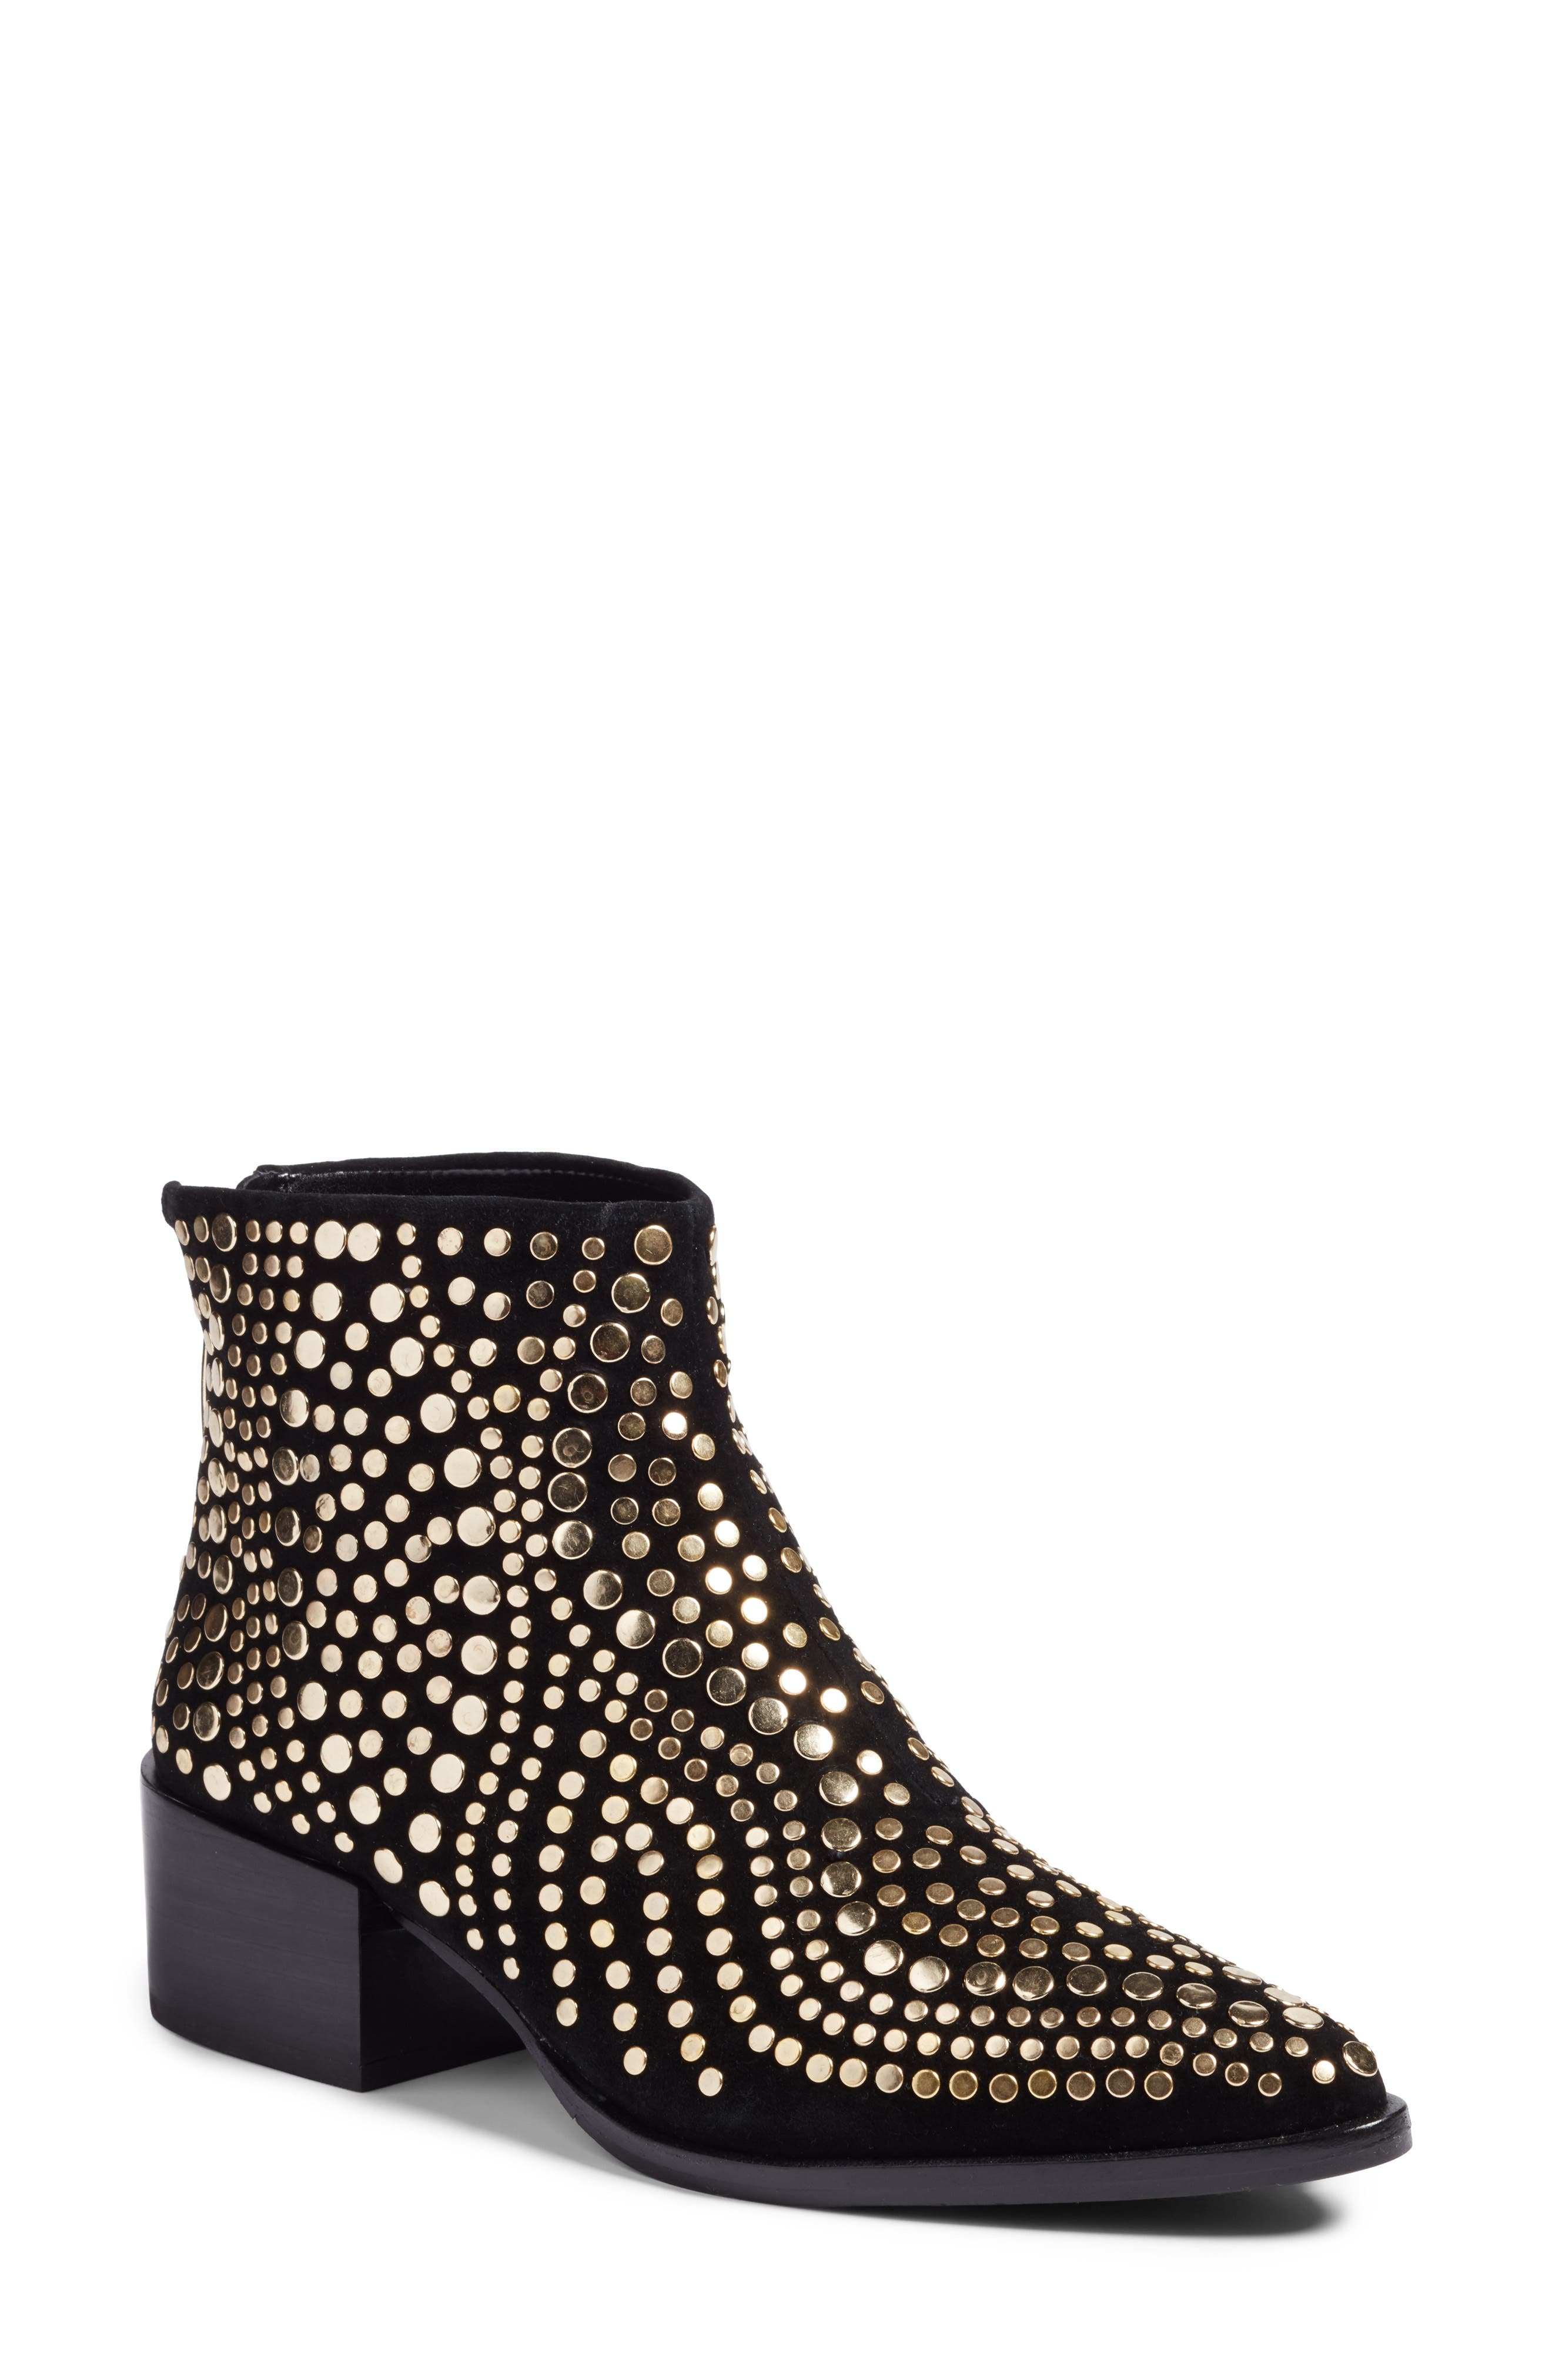 Edenny Studded Pointy Toe Bootie,                             Main thumbnail 1, color,                             Black Suede